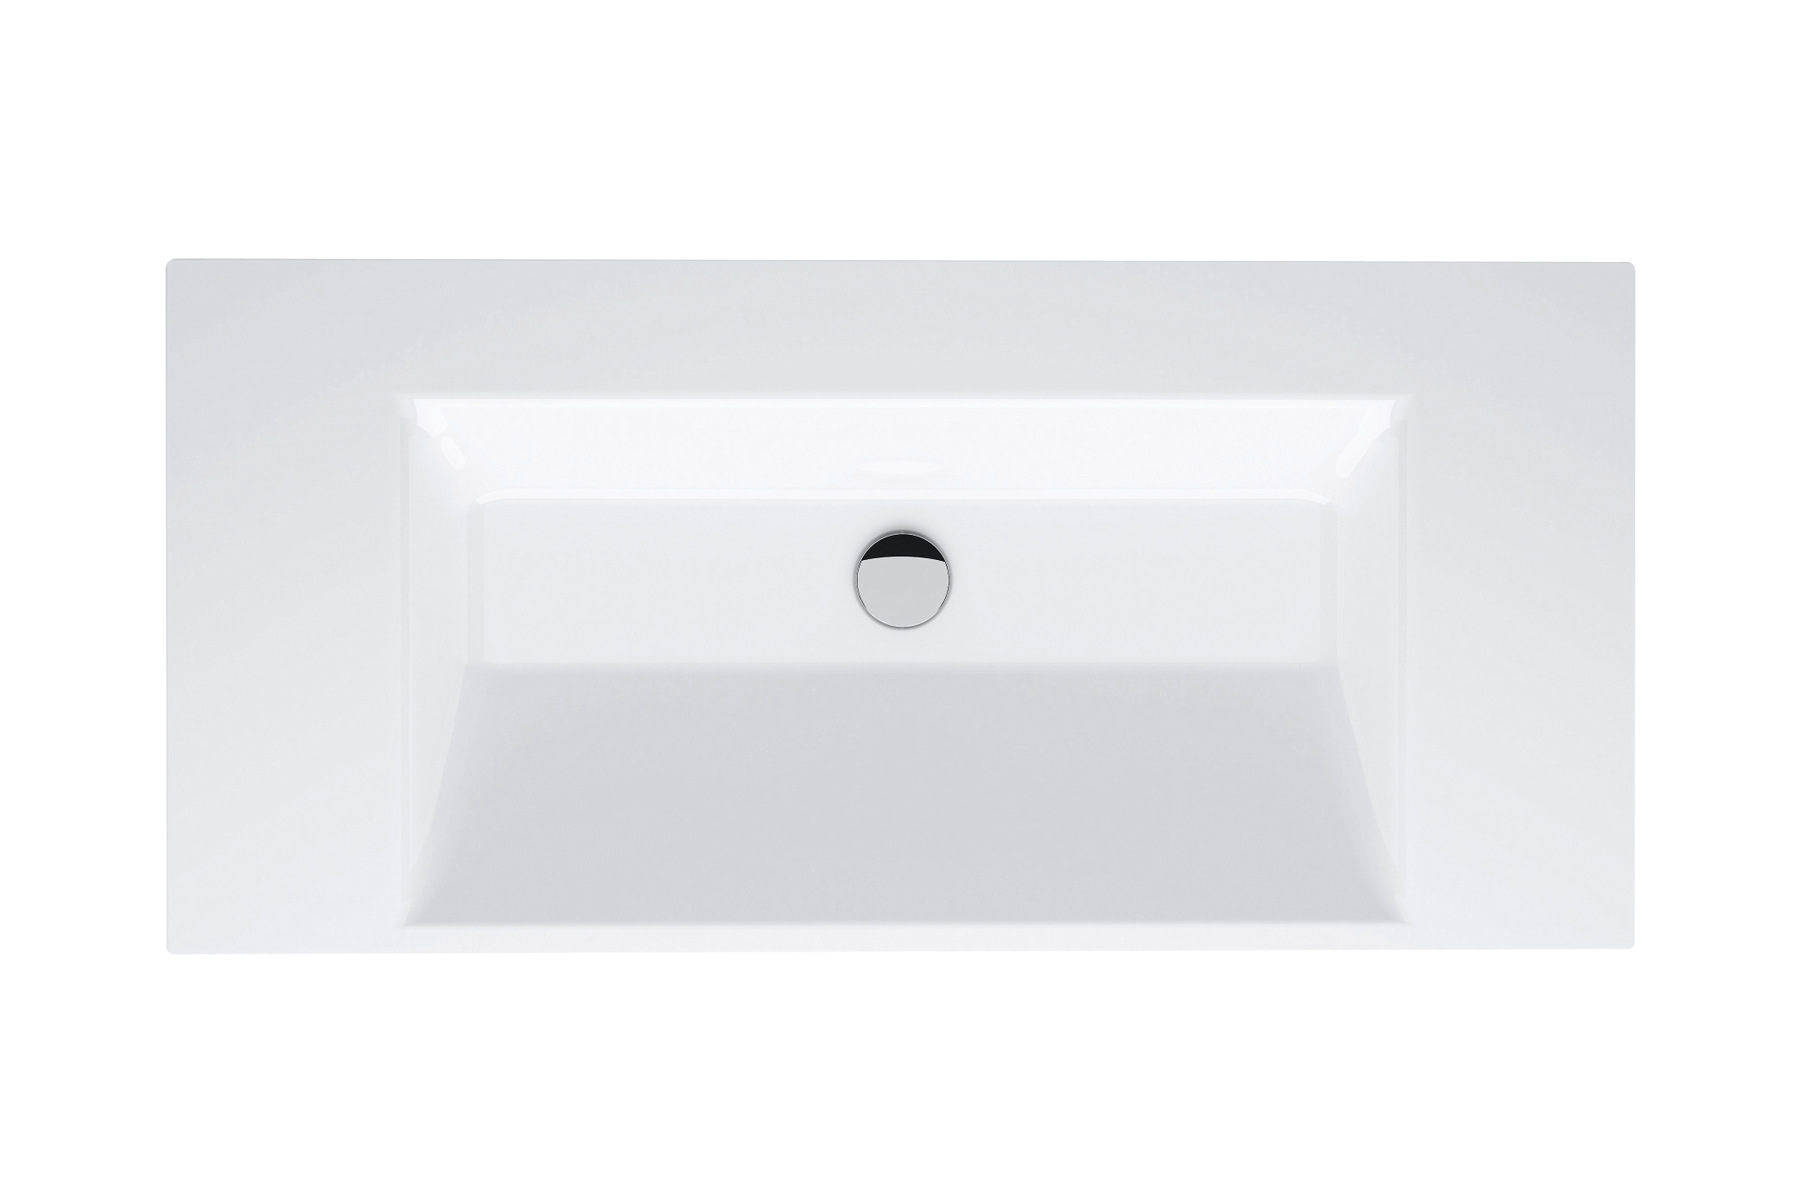 Betteaqua lavabo doble by bette dise o schmiddem design - Lavabo rectangular sobre encimera ...